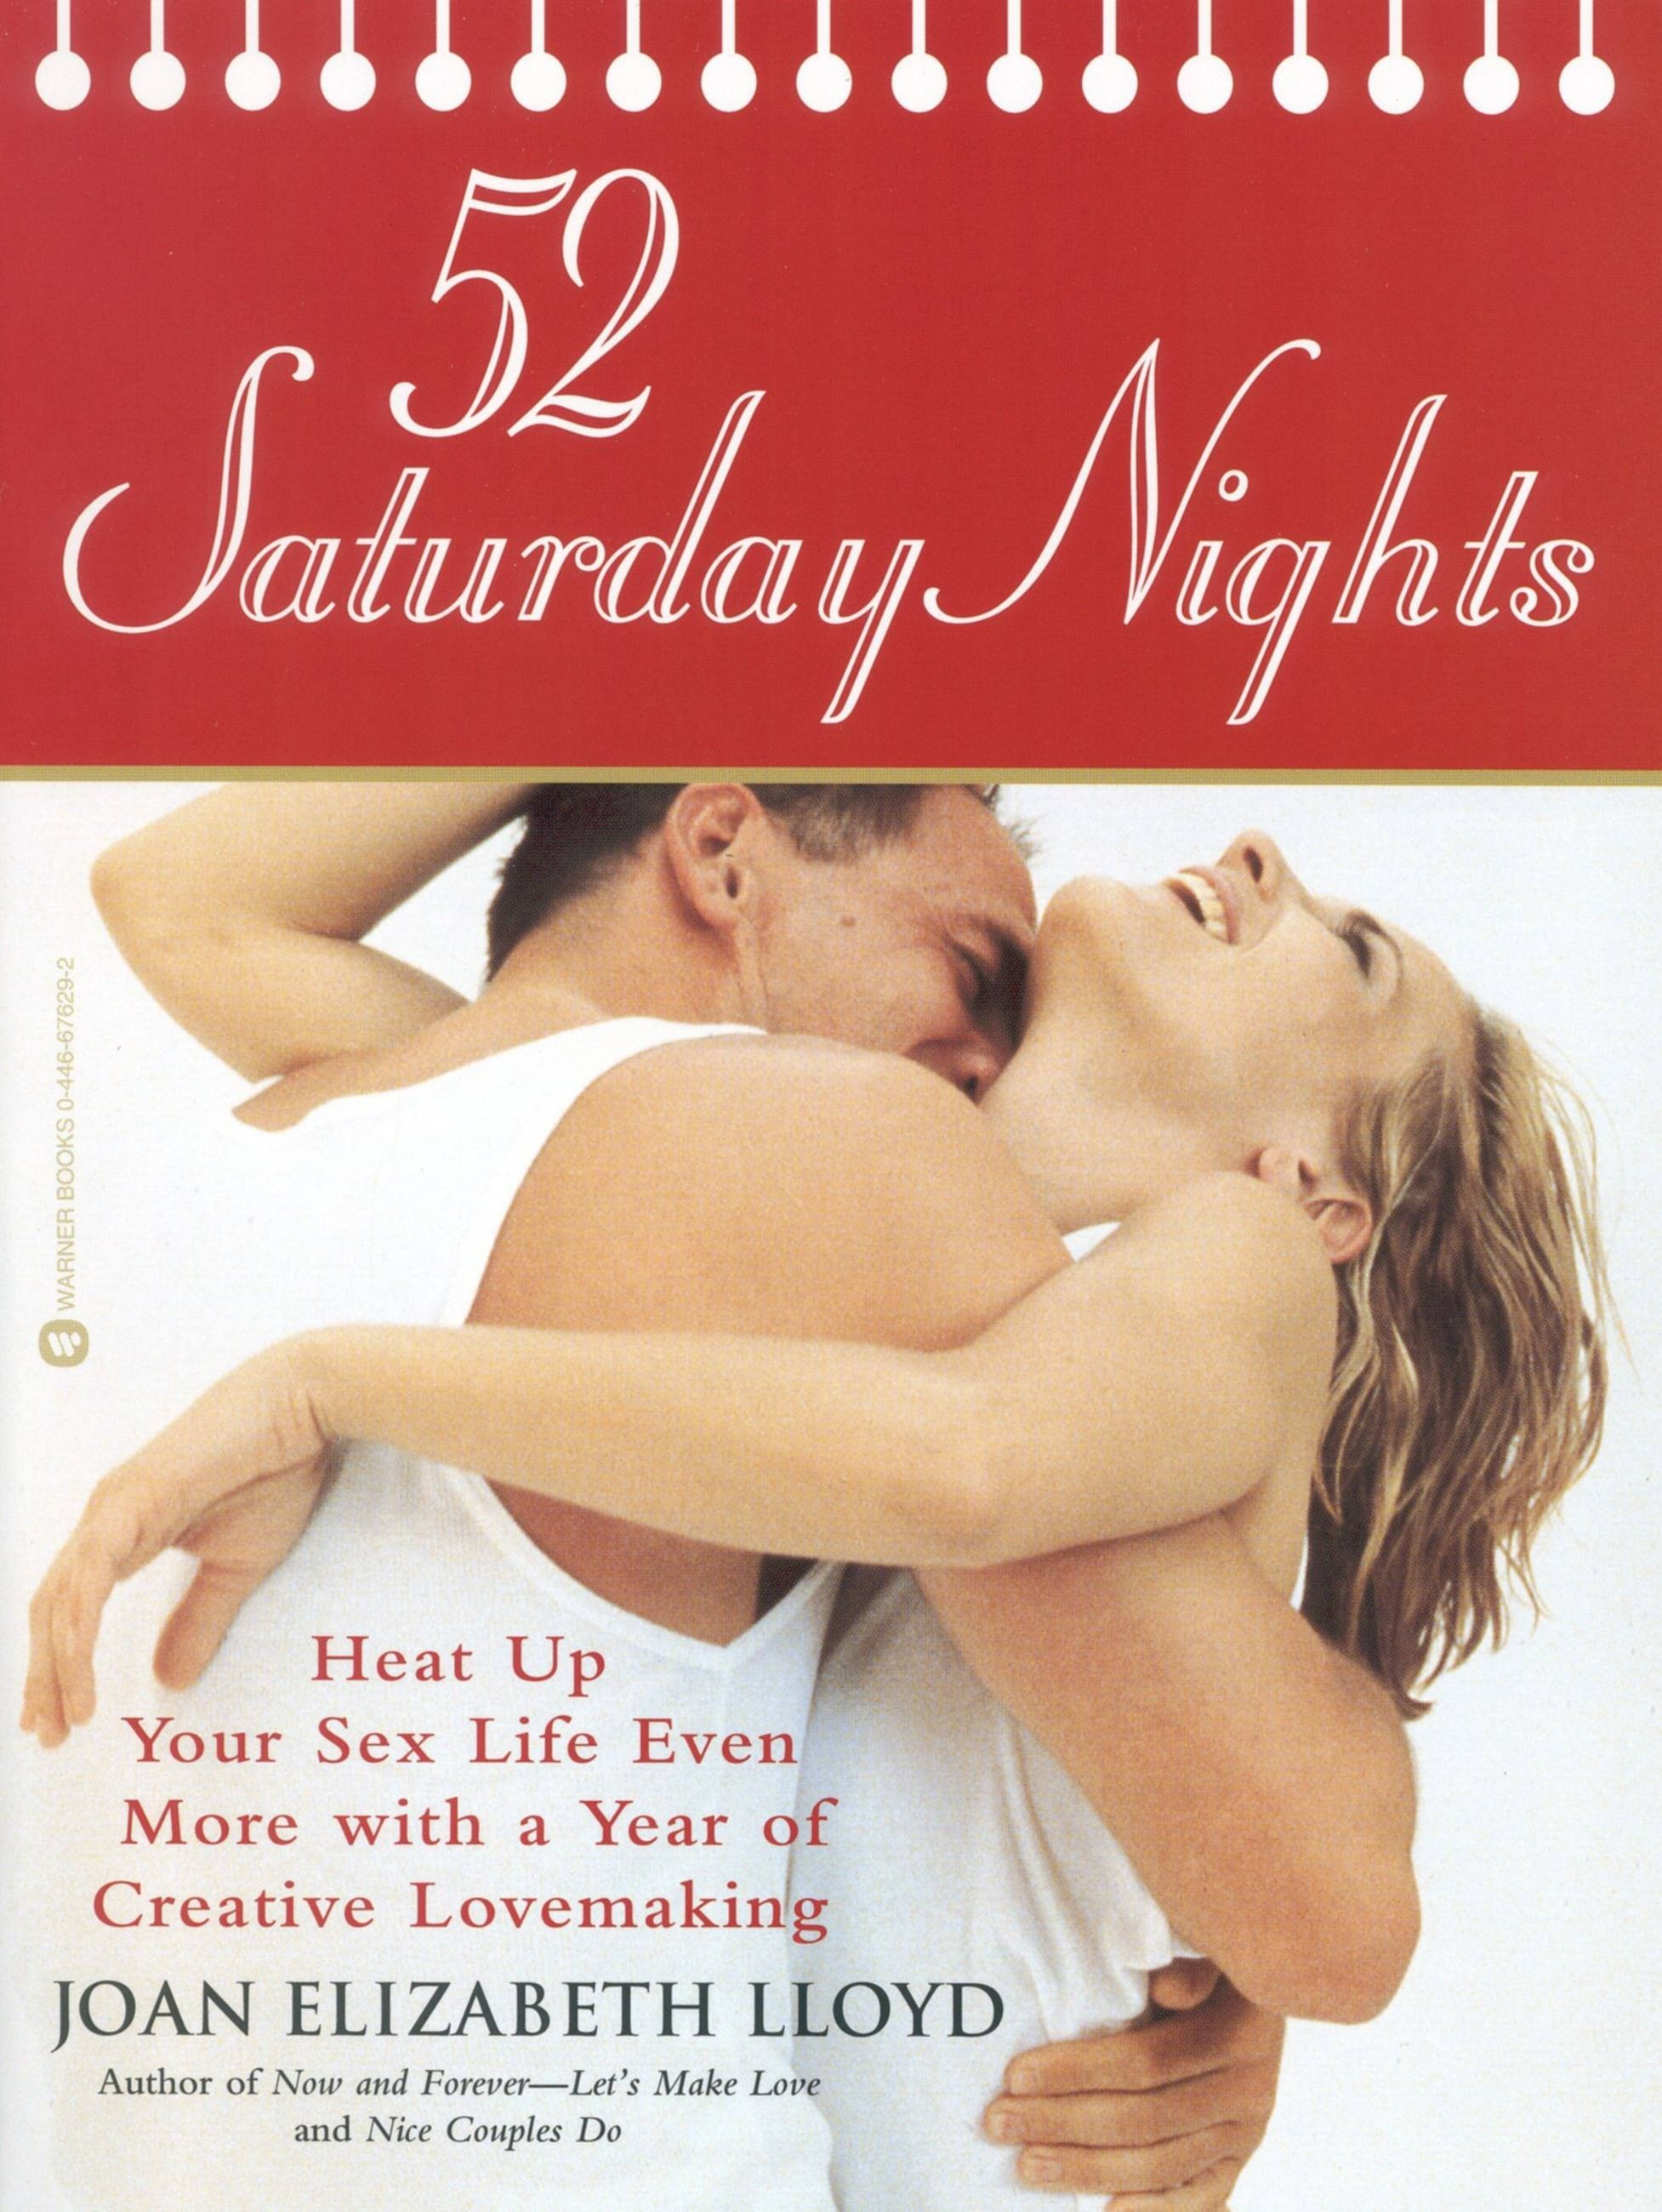 52 Saturday Nights